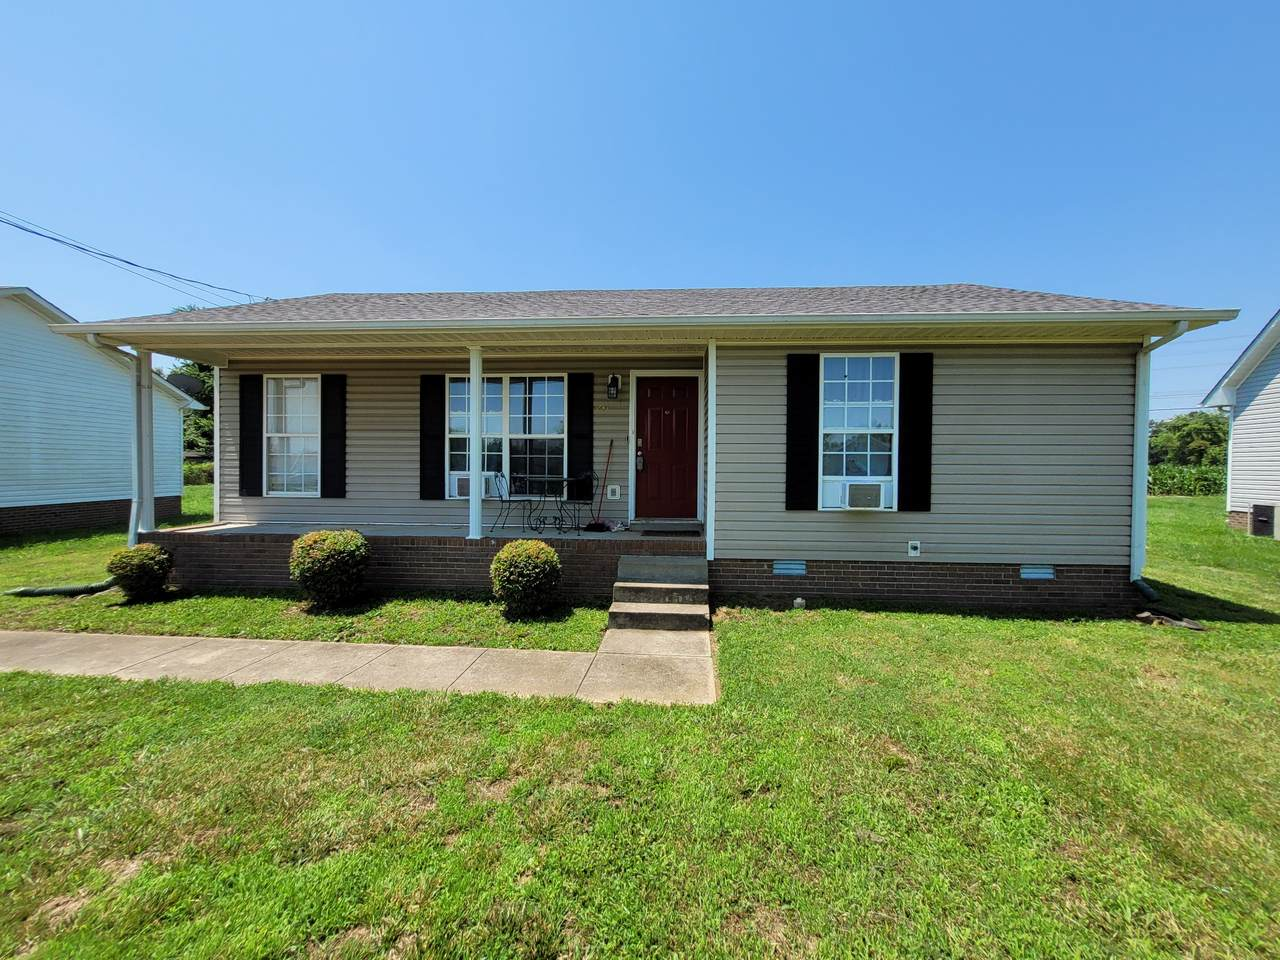 247 Waterford Dr - Photo 1